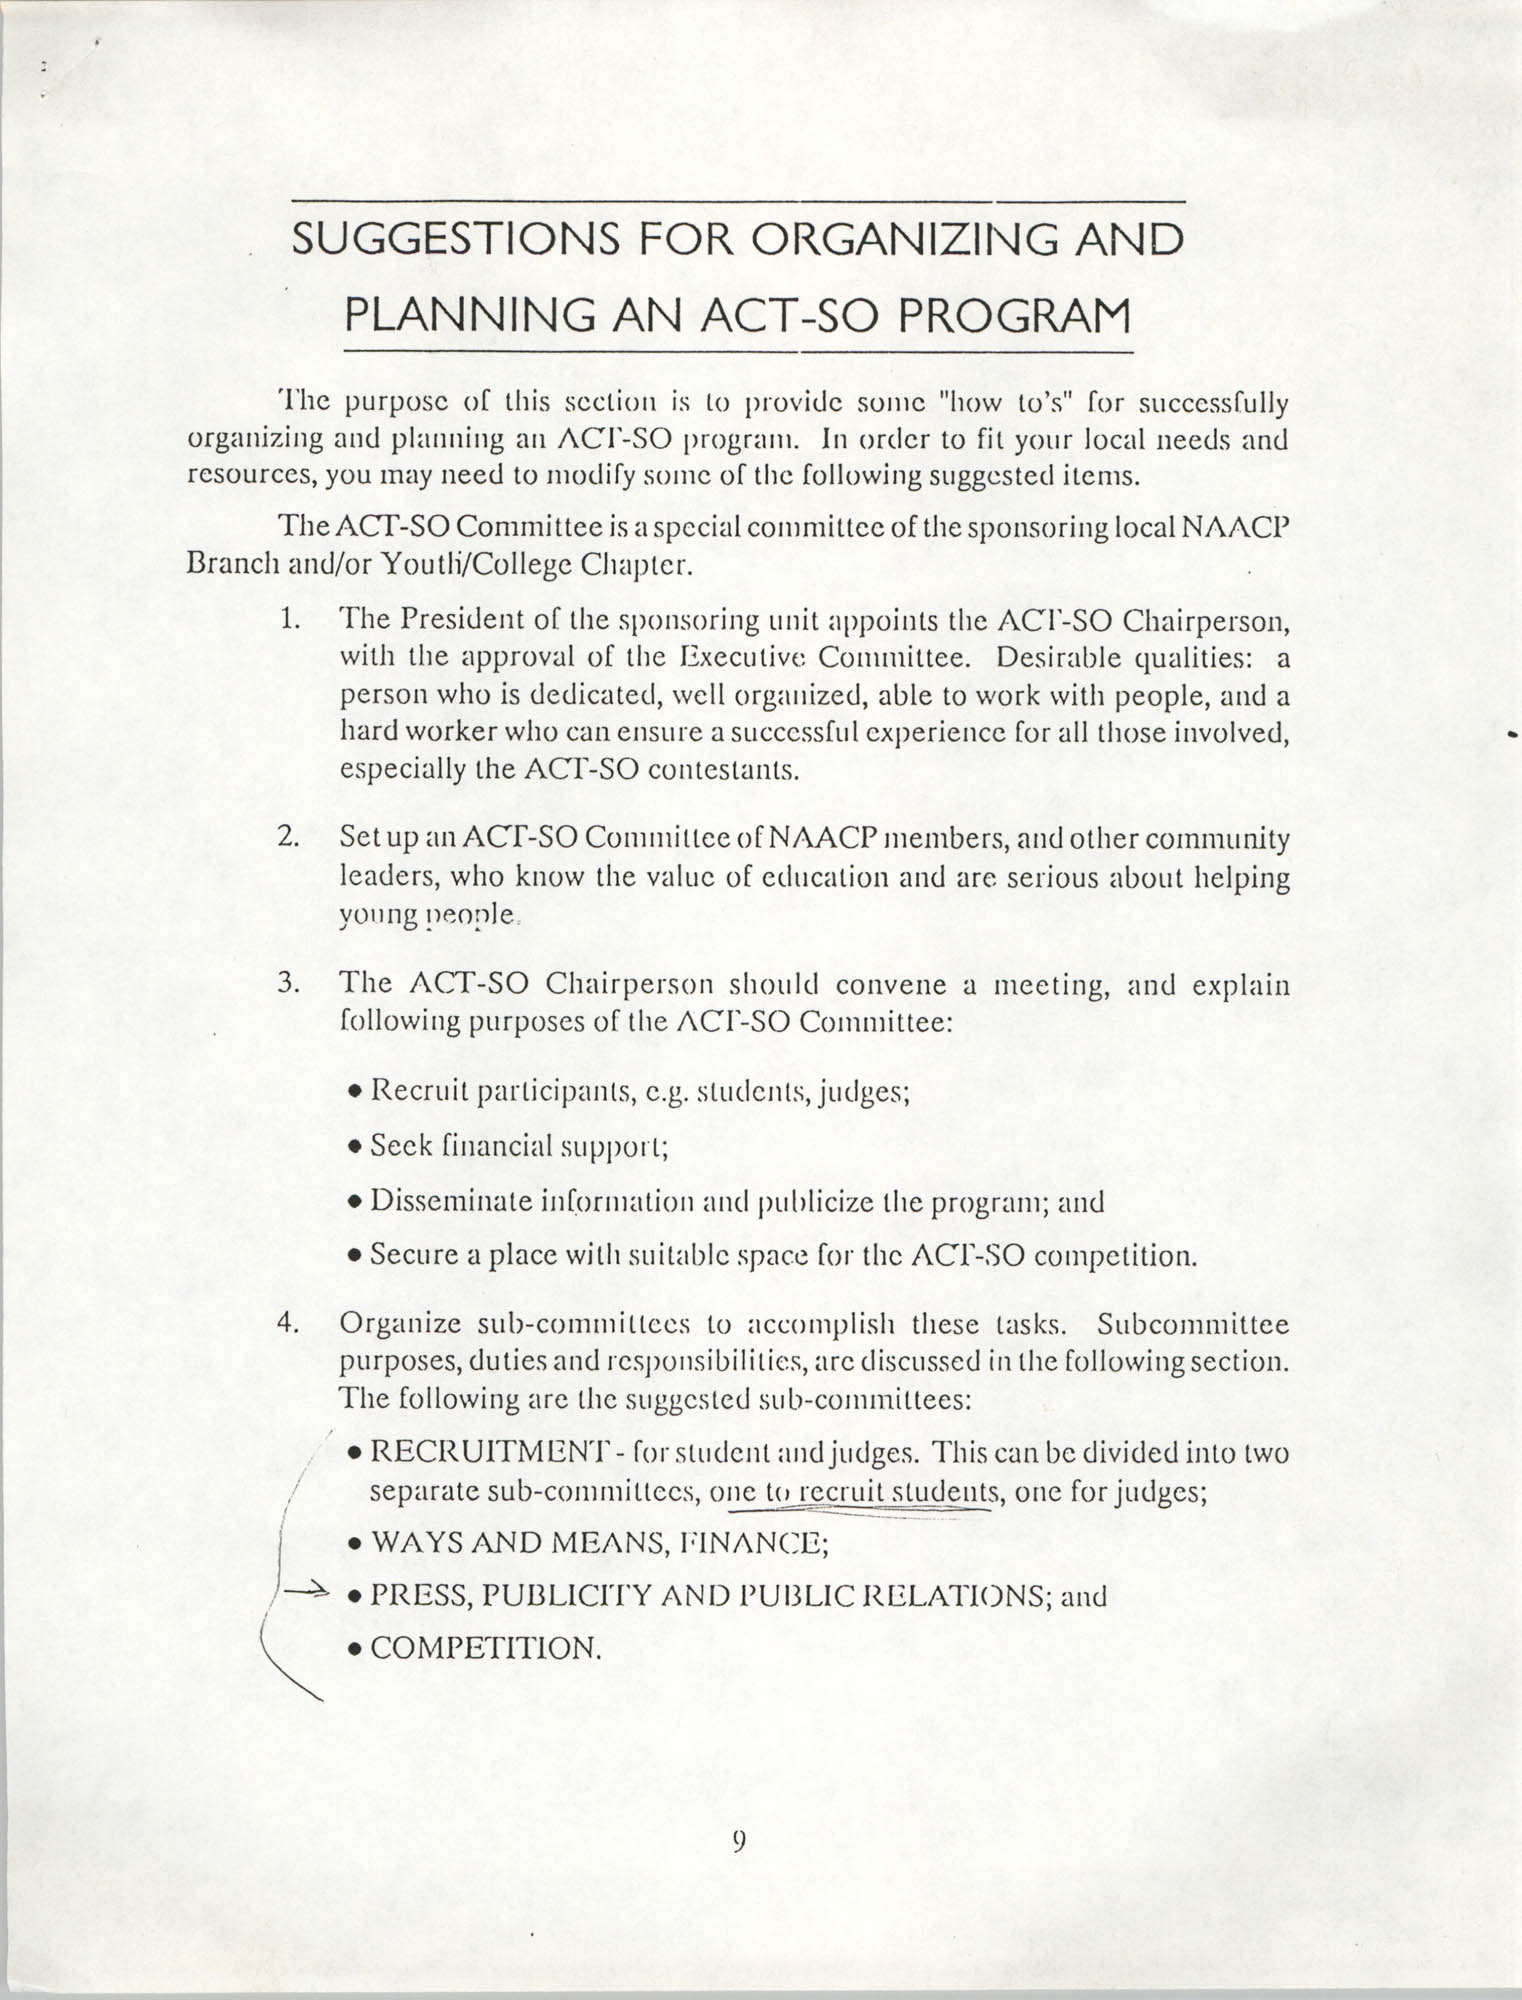 Suggestions for Organizing and Planning an ACT-SO Program, NAACP